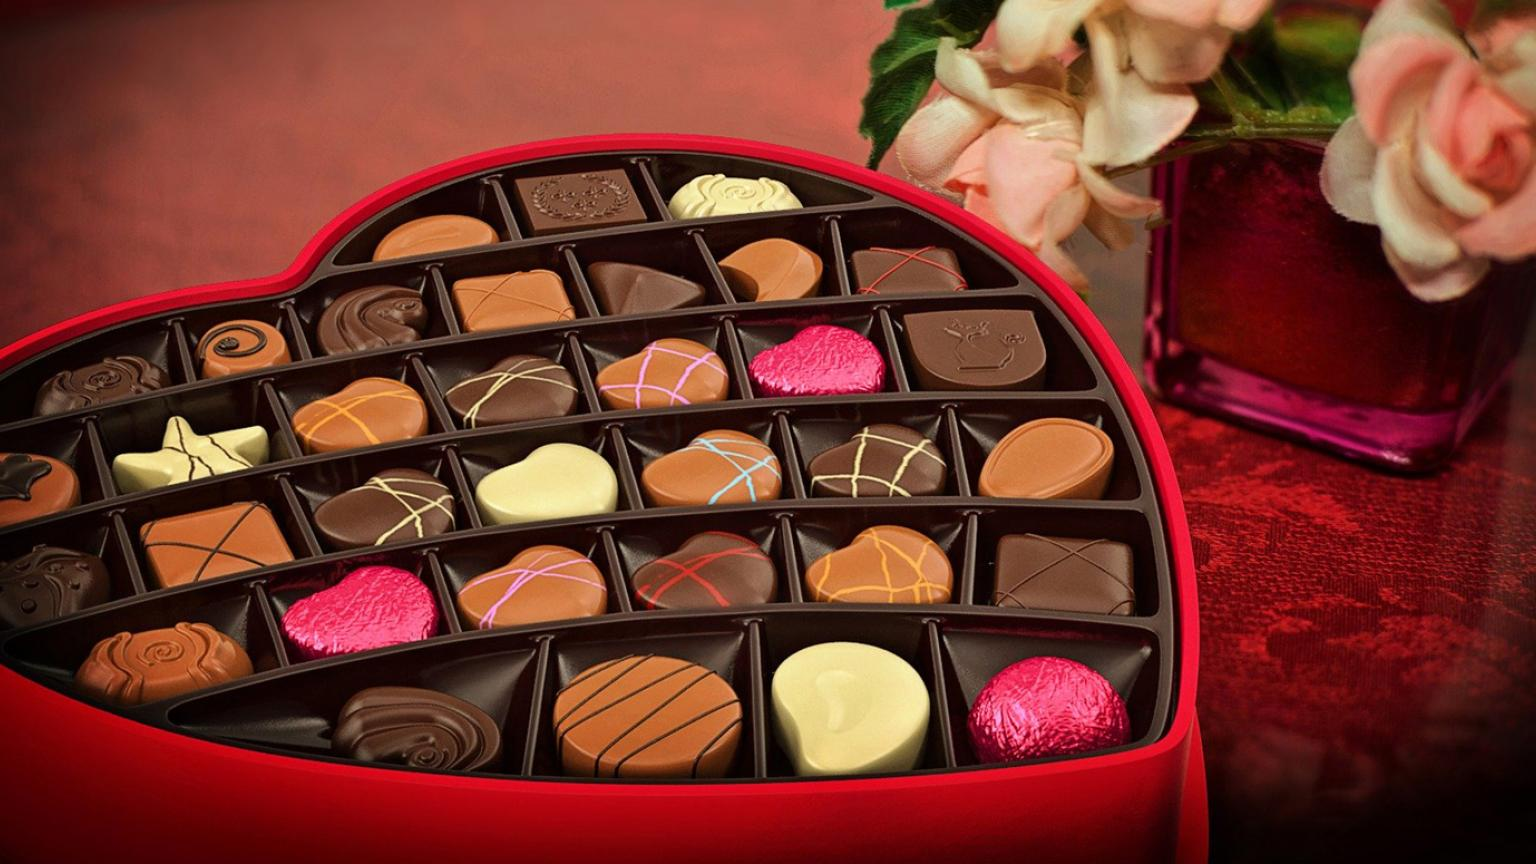 A heart shaped box of assorted chocolates with a small vase of pink roses in the background